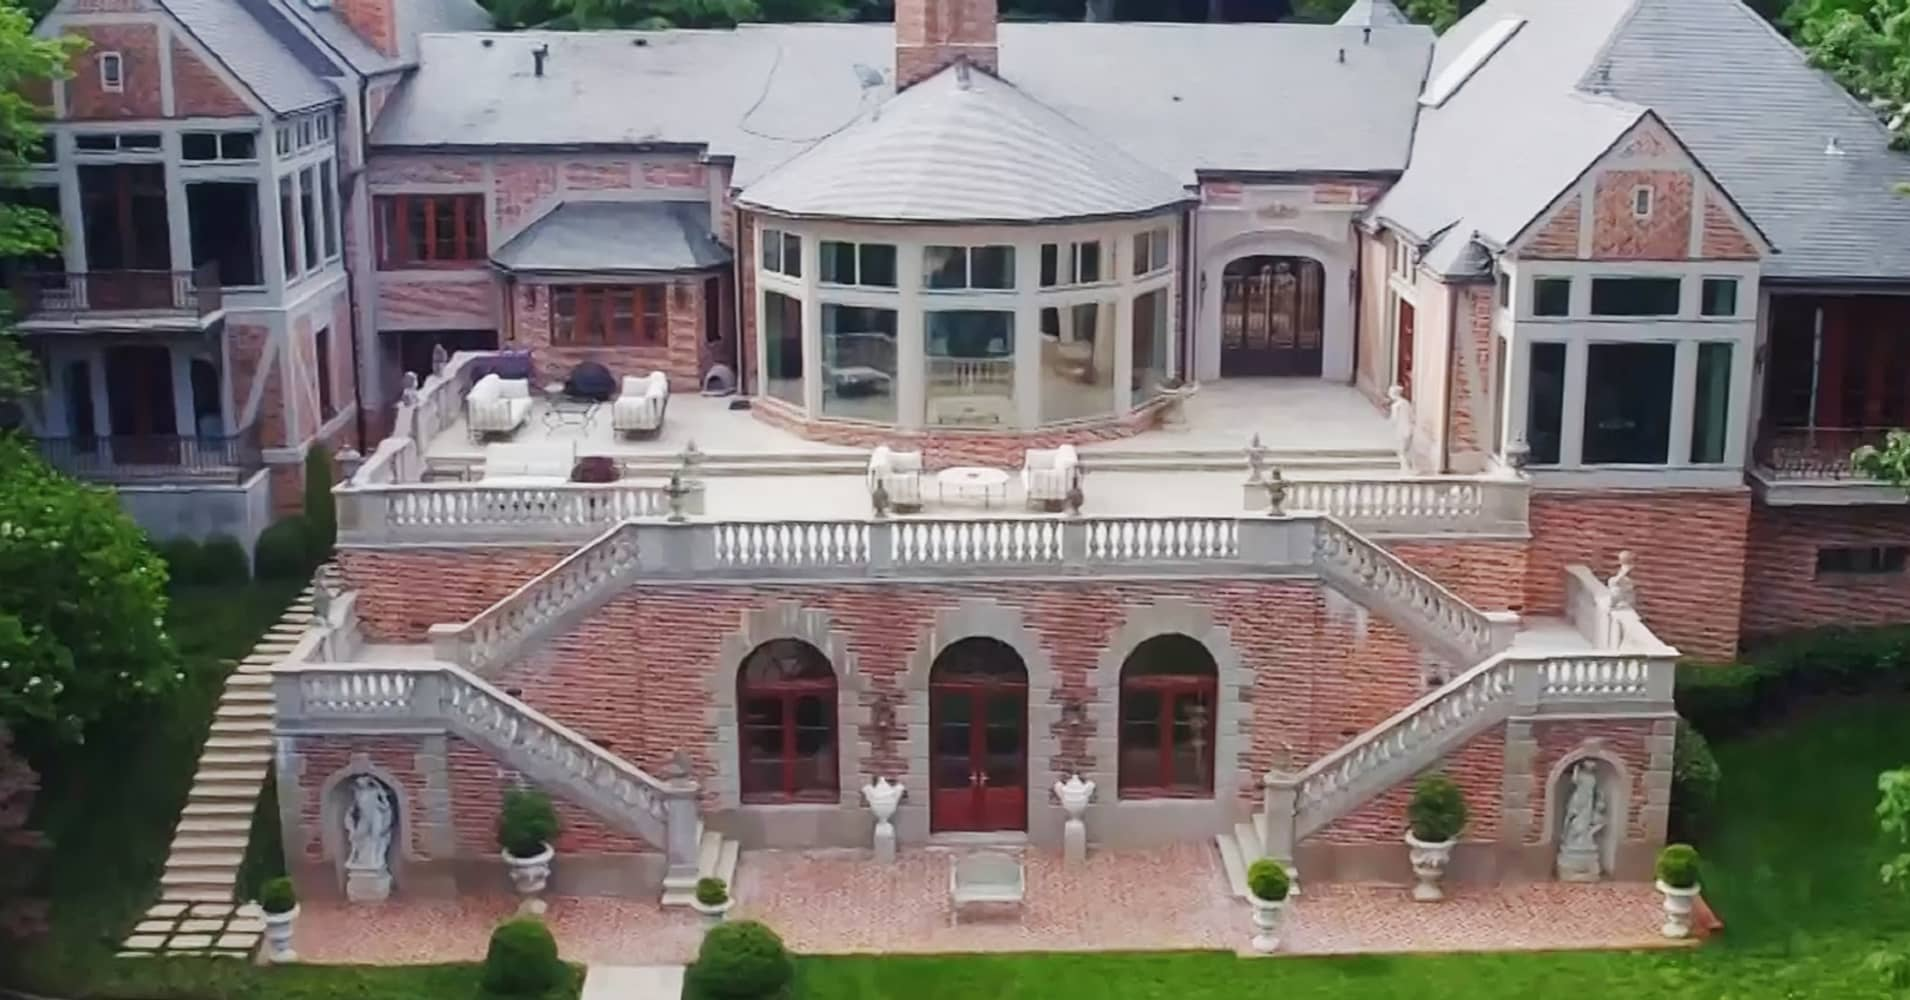 Most expensive house in georgia on the market for 48 million for Cost to build a house in georgia